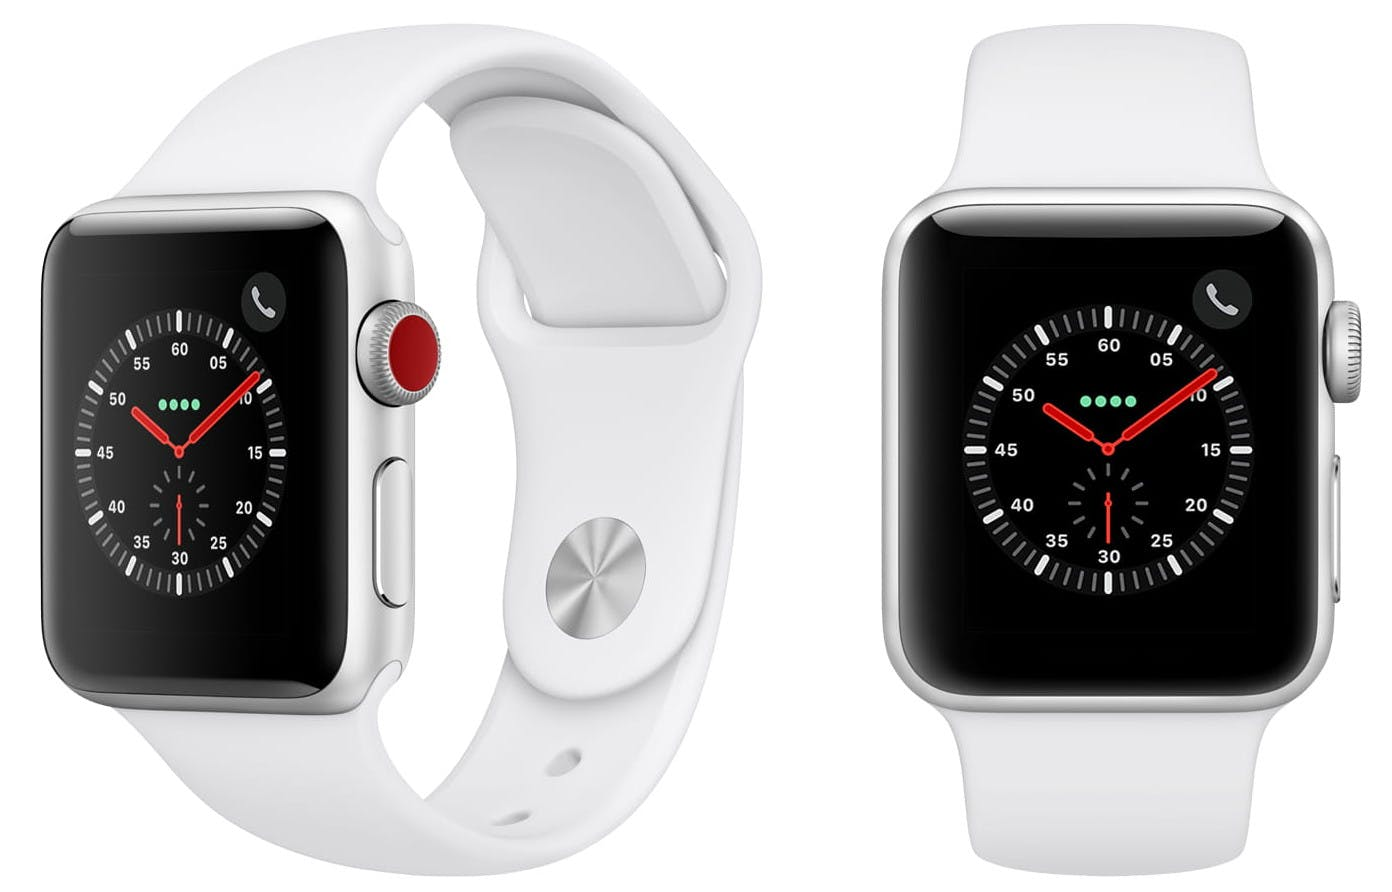 Best Apple Watch Deals Through Your Phone Provider The Krazy Coupon Lady